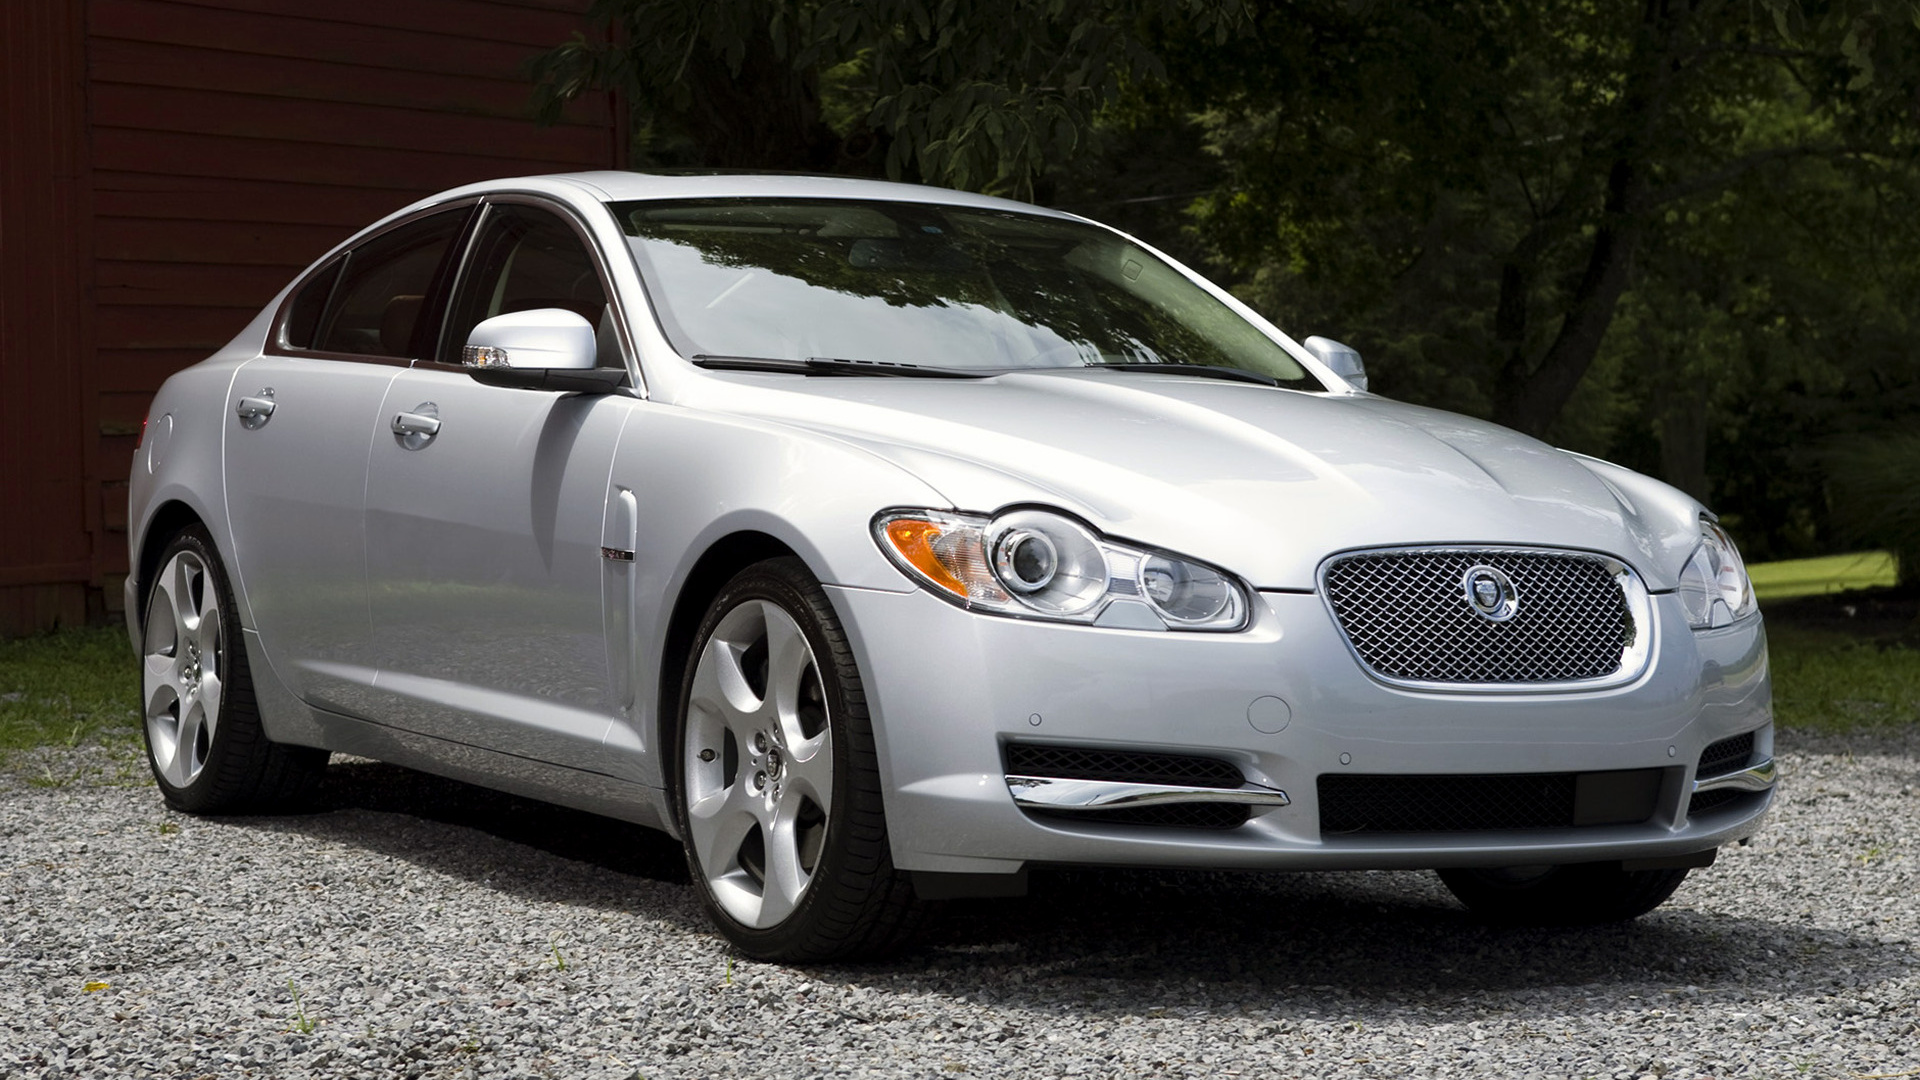 jaguar xf 2008 us wallpapers and hd images car pixel. Black Bedroom Furniture Sets. Home Design Ideas